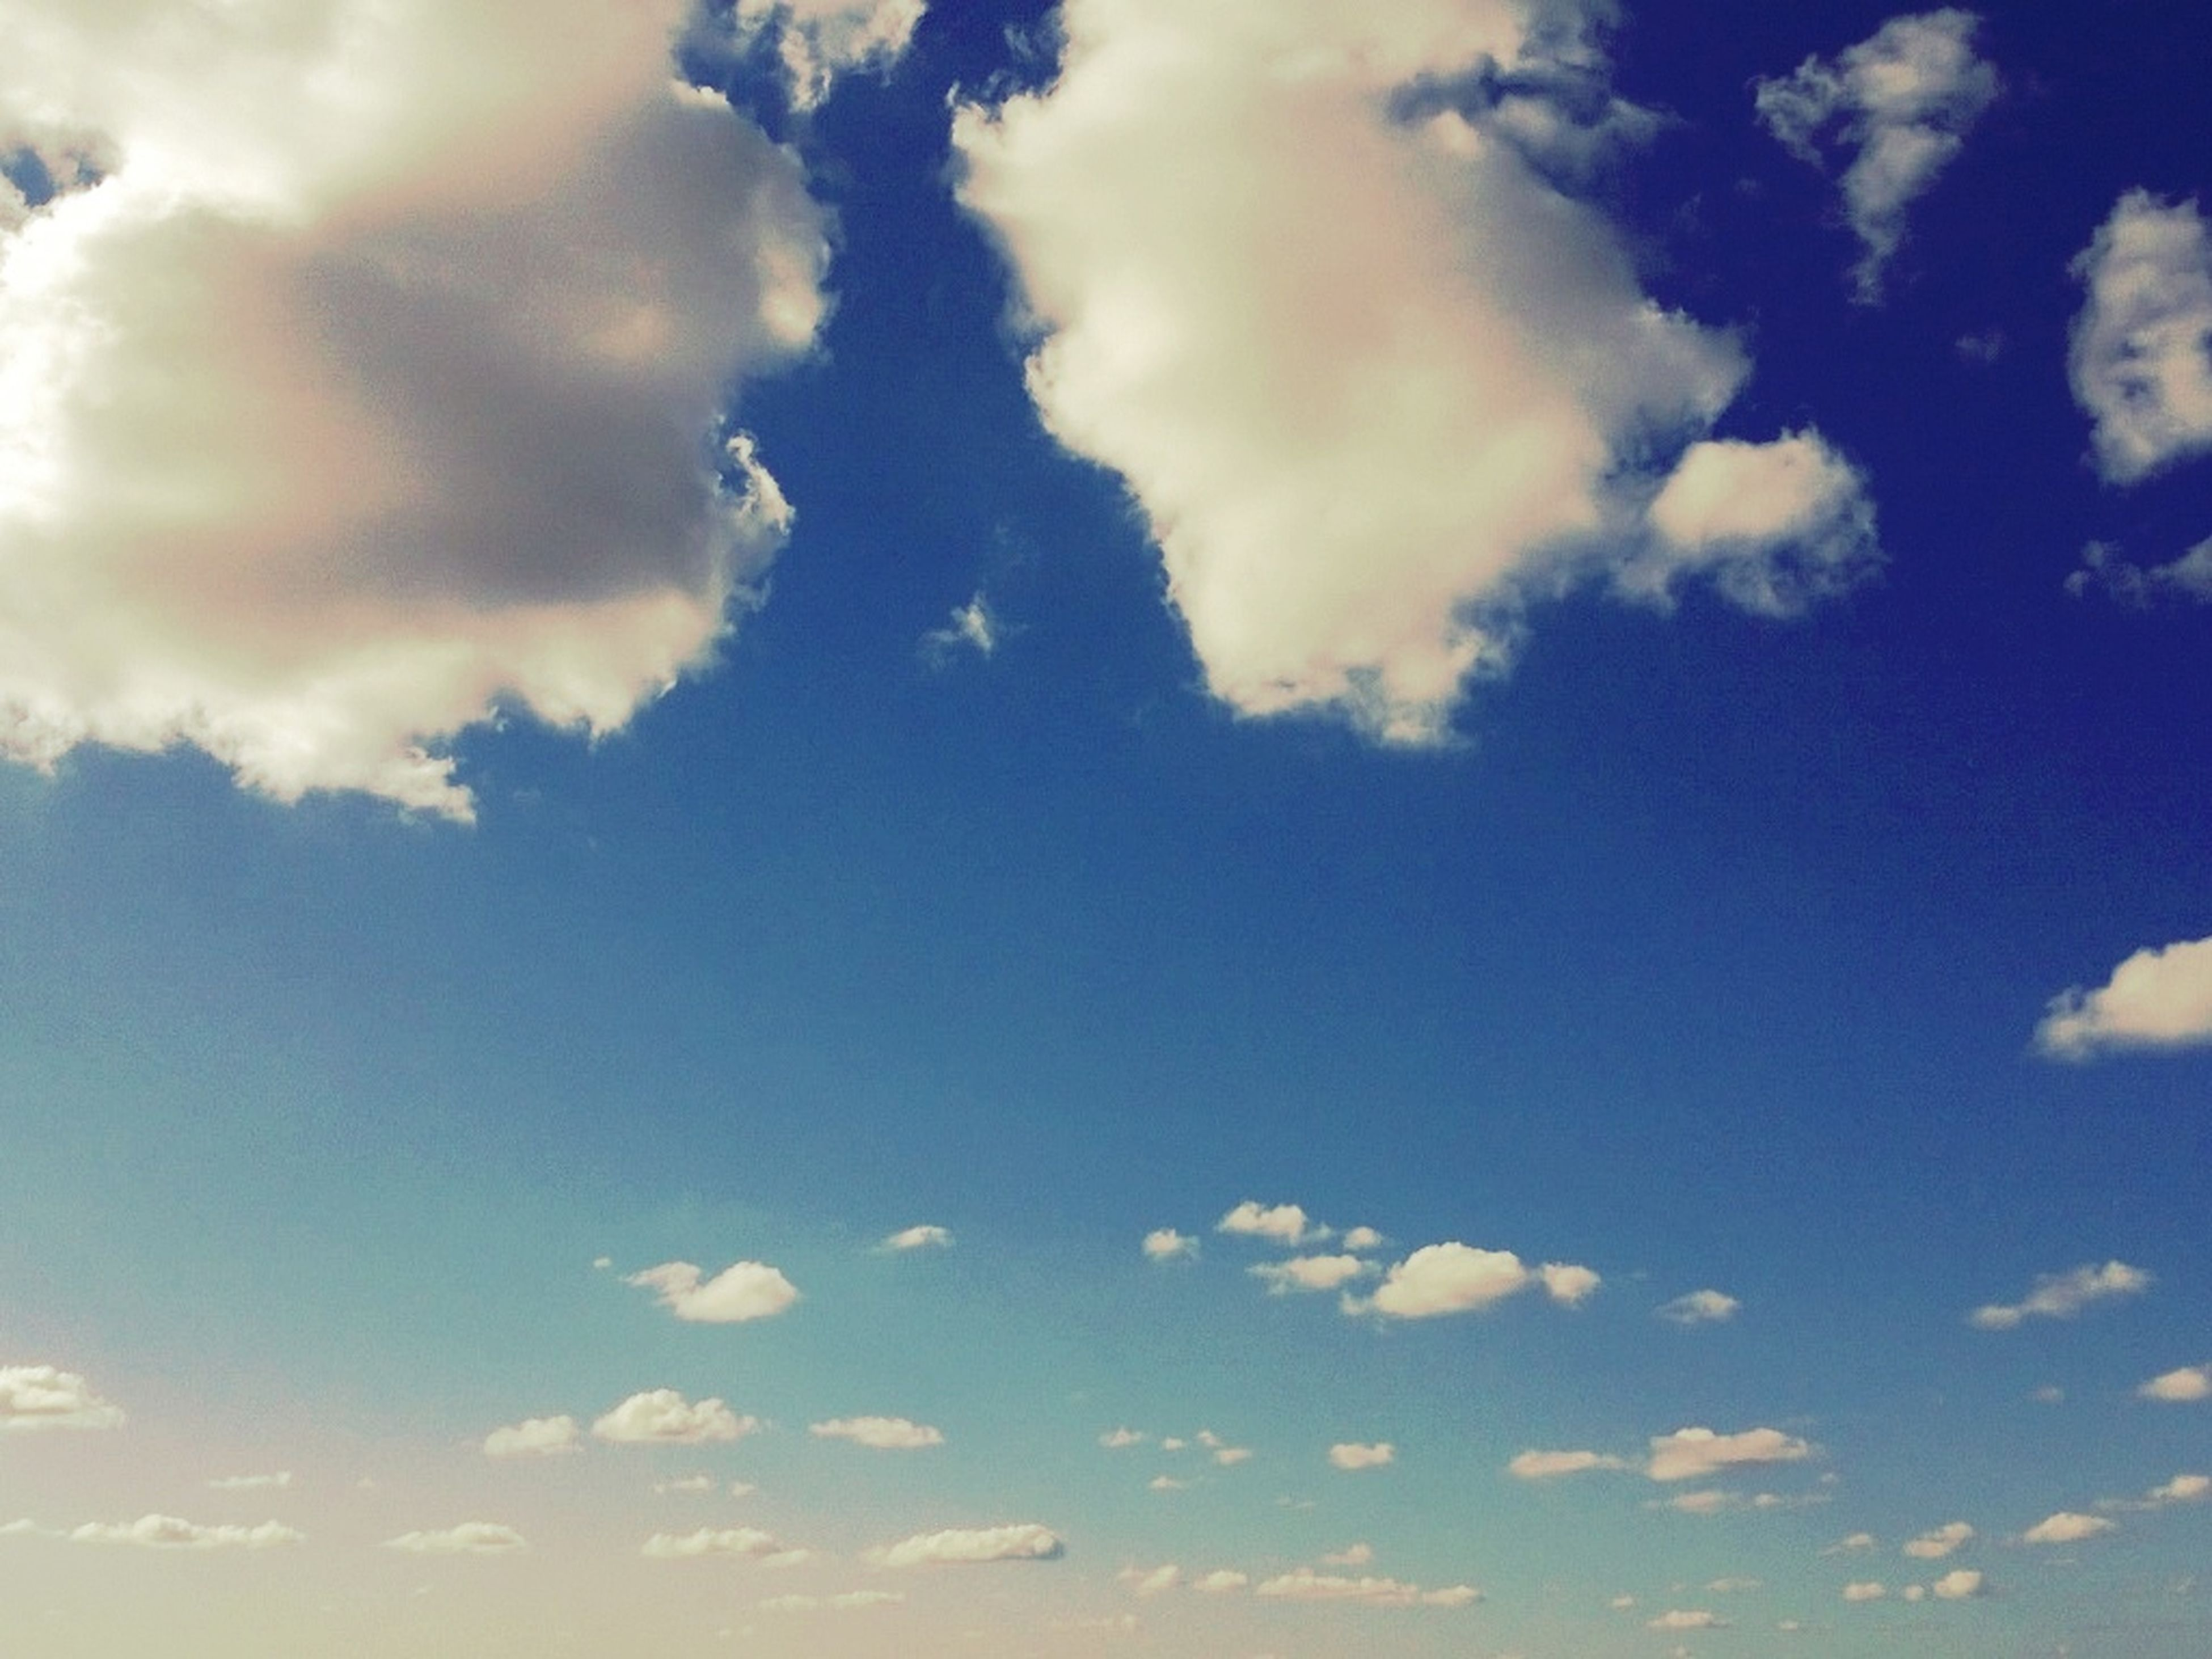 sky, cloud - sky, low angle view, beauty in nature, blue, tranquility, scenics, cloudy, nature, tranquil scene, sky only, cloud, cloudscape, backgrounds, idyllic, outdoors, day, no people, full frame, white color